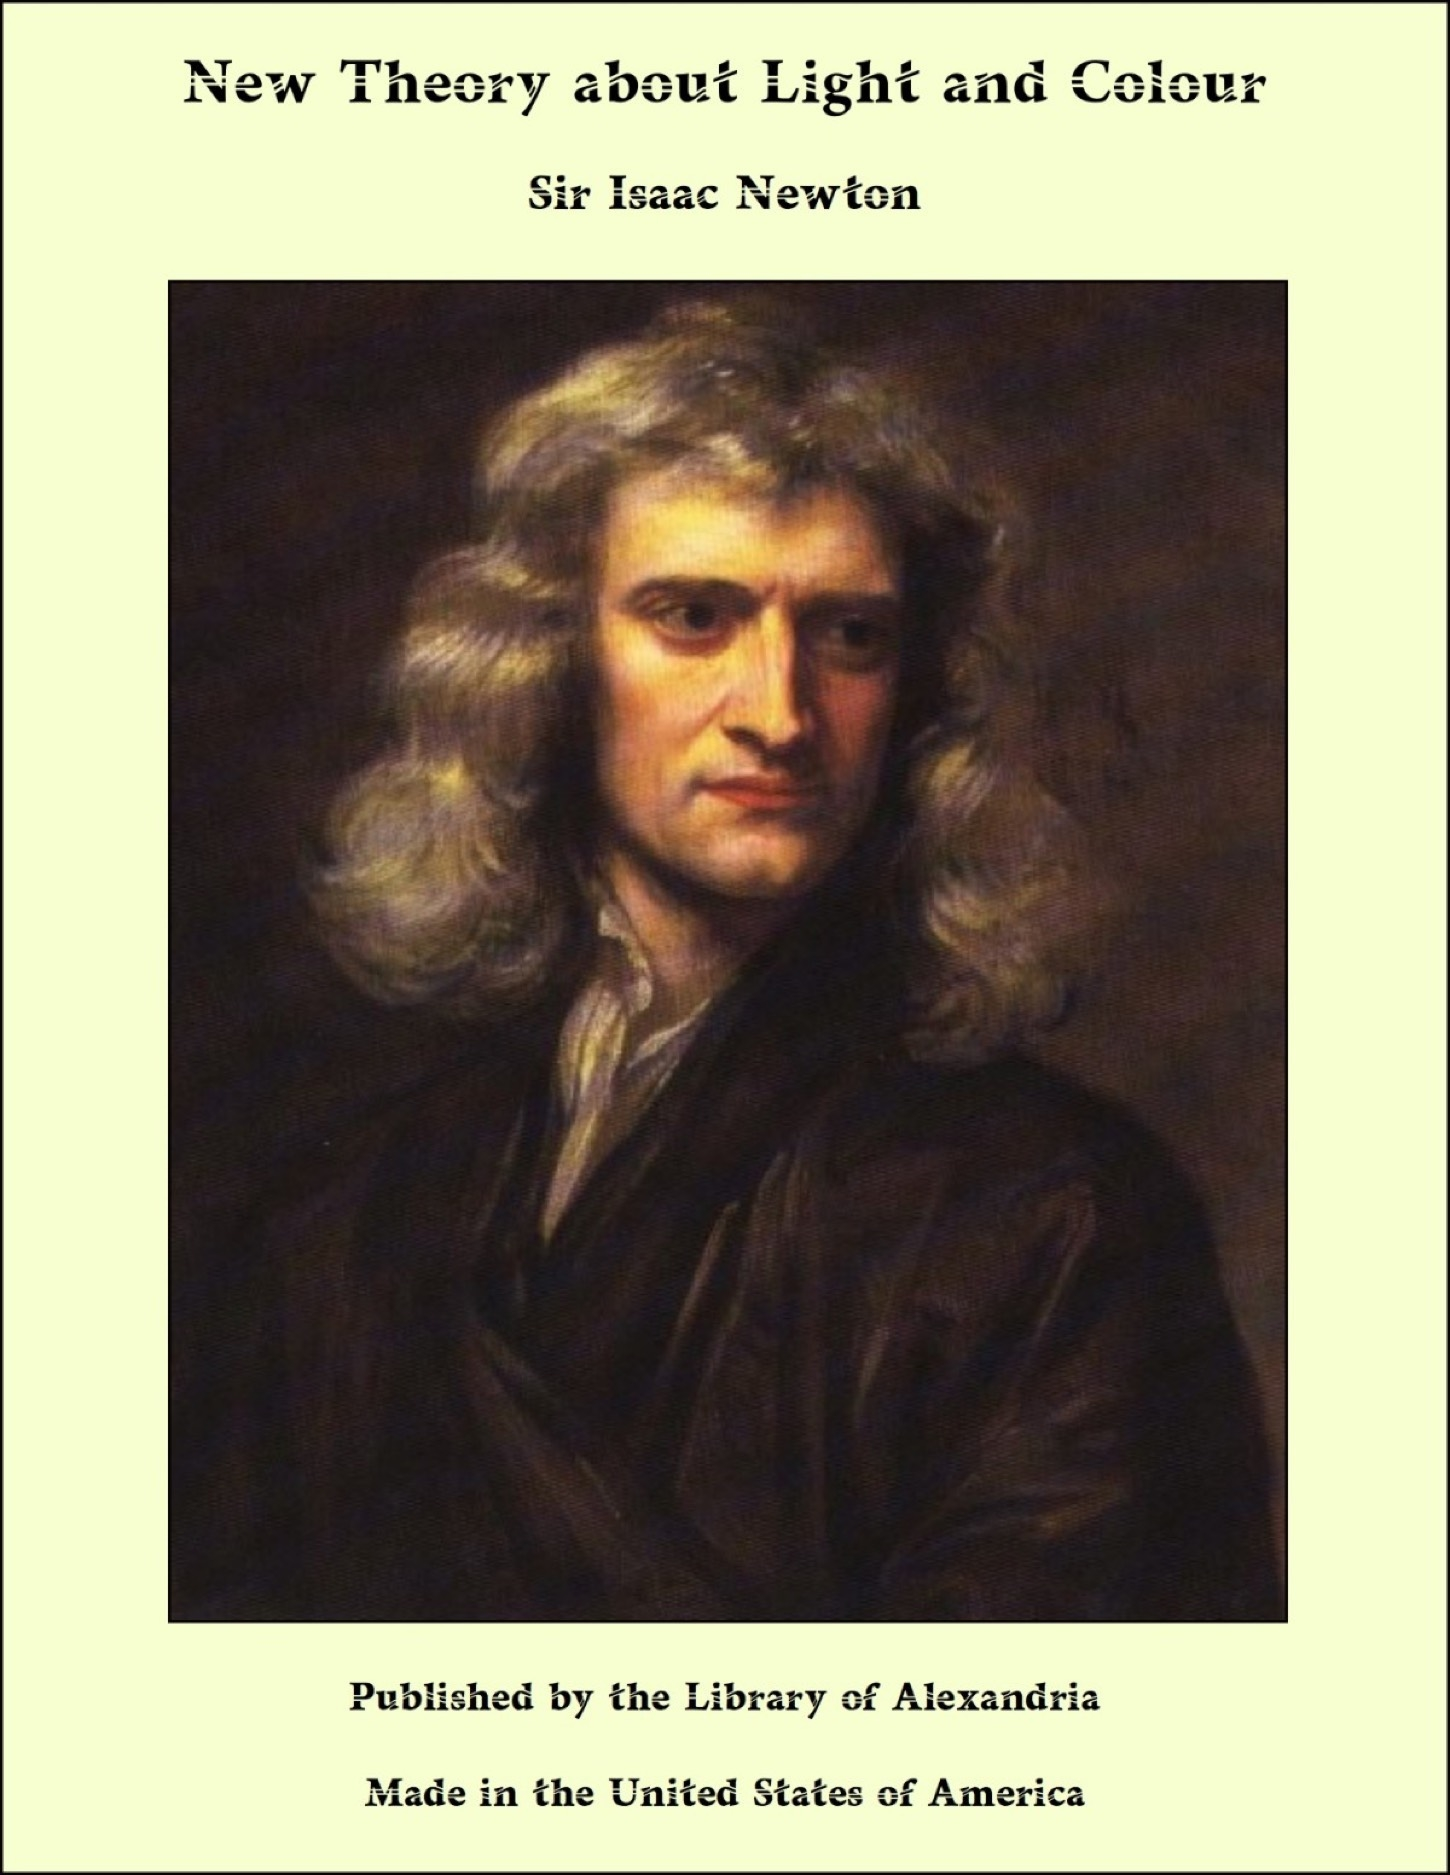 the life and times of sir isaac newton Sir issac newton newton was born on december 25,1642 he was an english mathematician and physicist, considered one of the greatest scientist in history, who made important contributions to many fields of science.